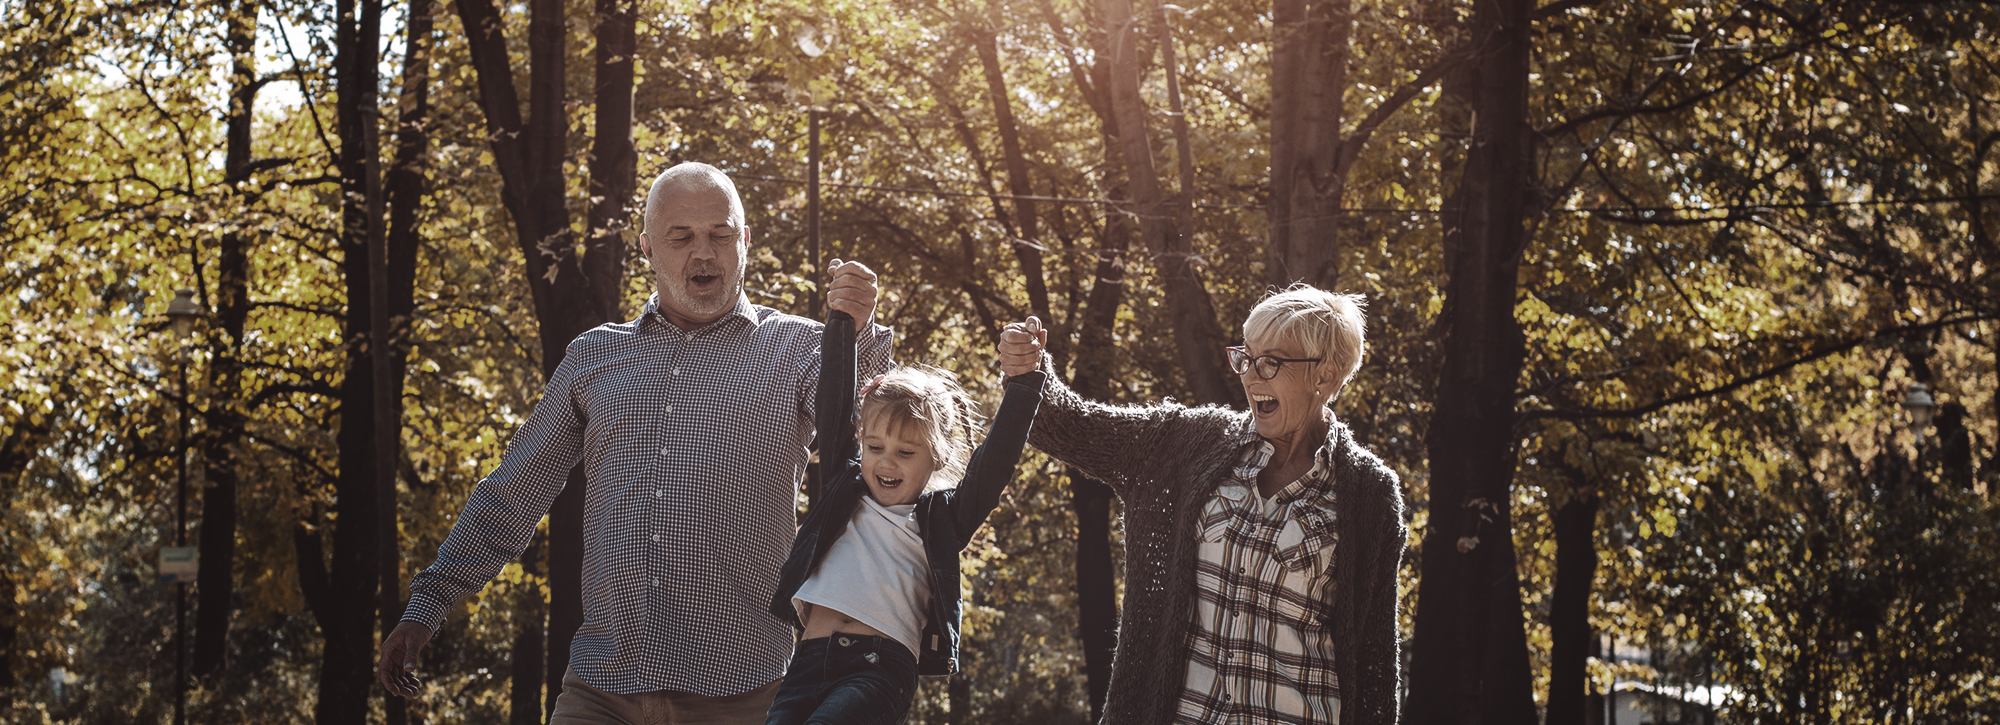 Grandparents - We Focus on What's Important So You Can Too